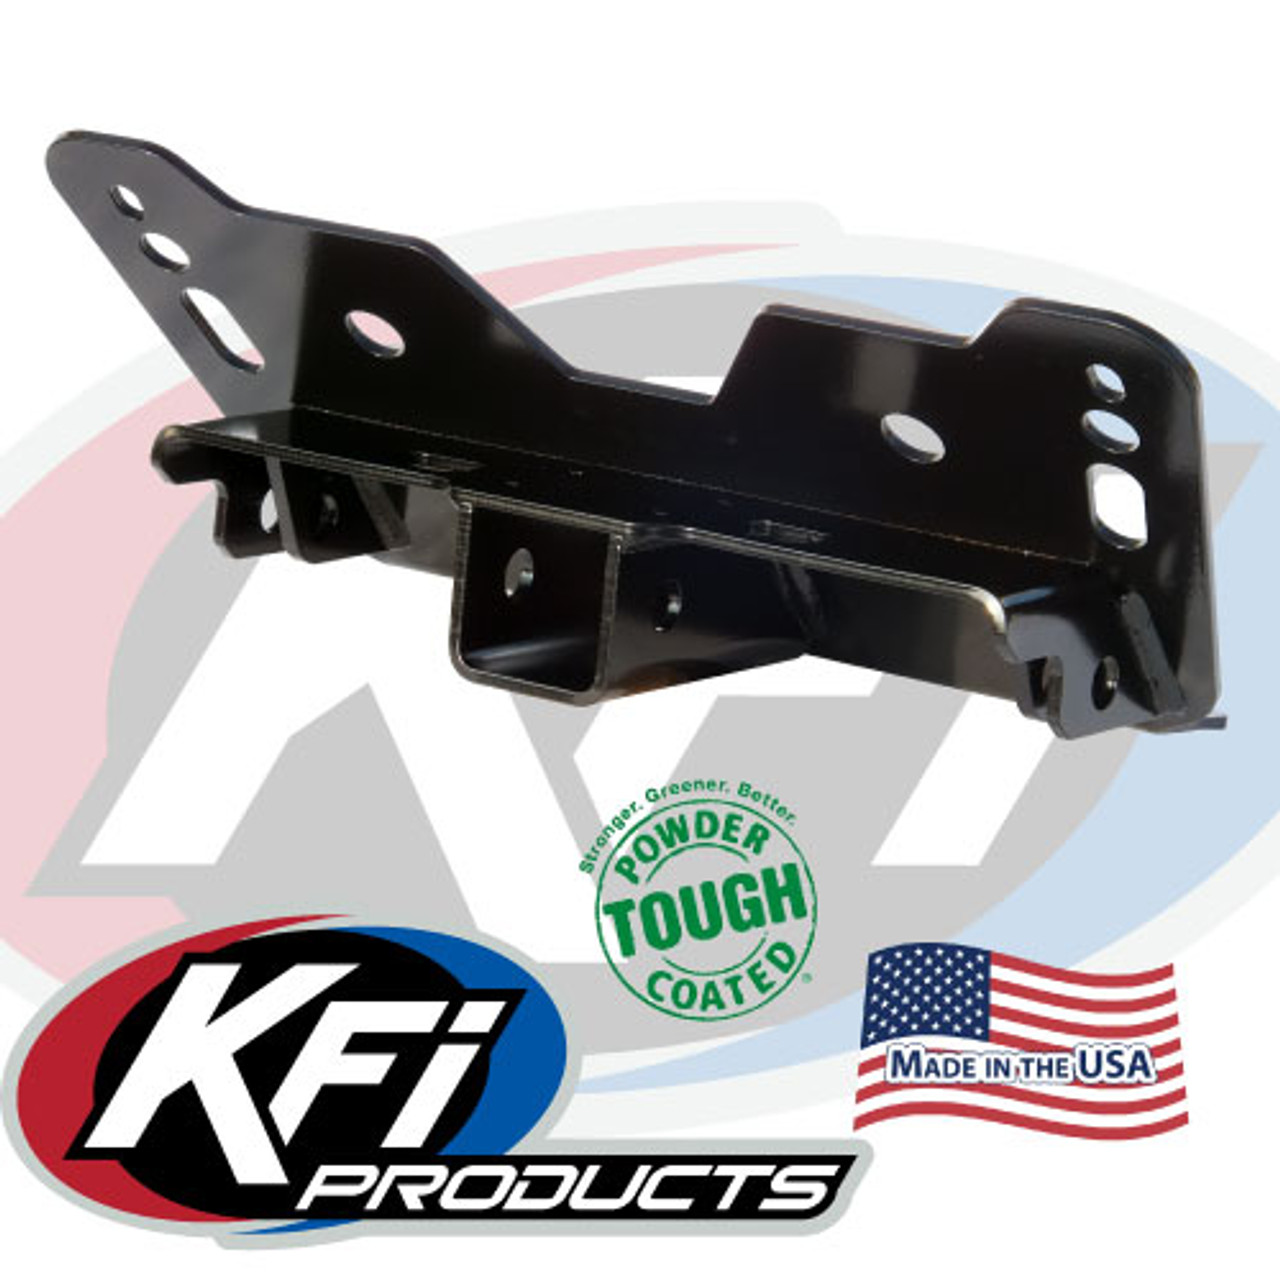 Multi Open Trail 105615 Utv Plow Mount Kit